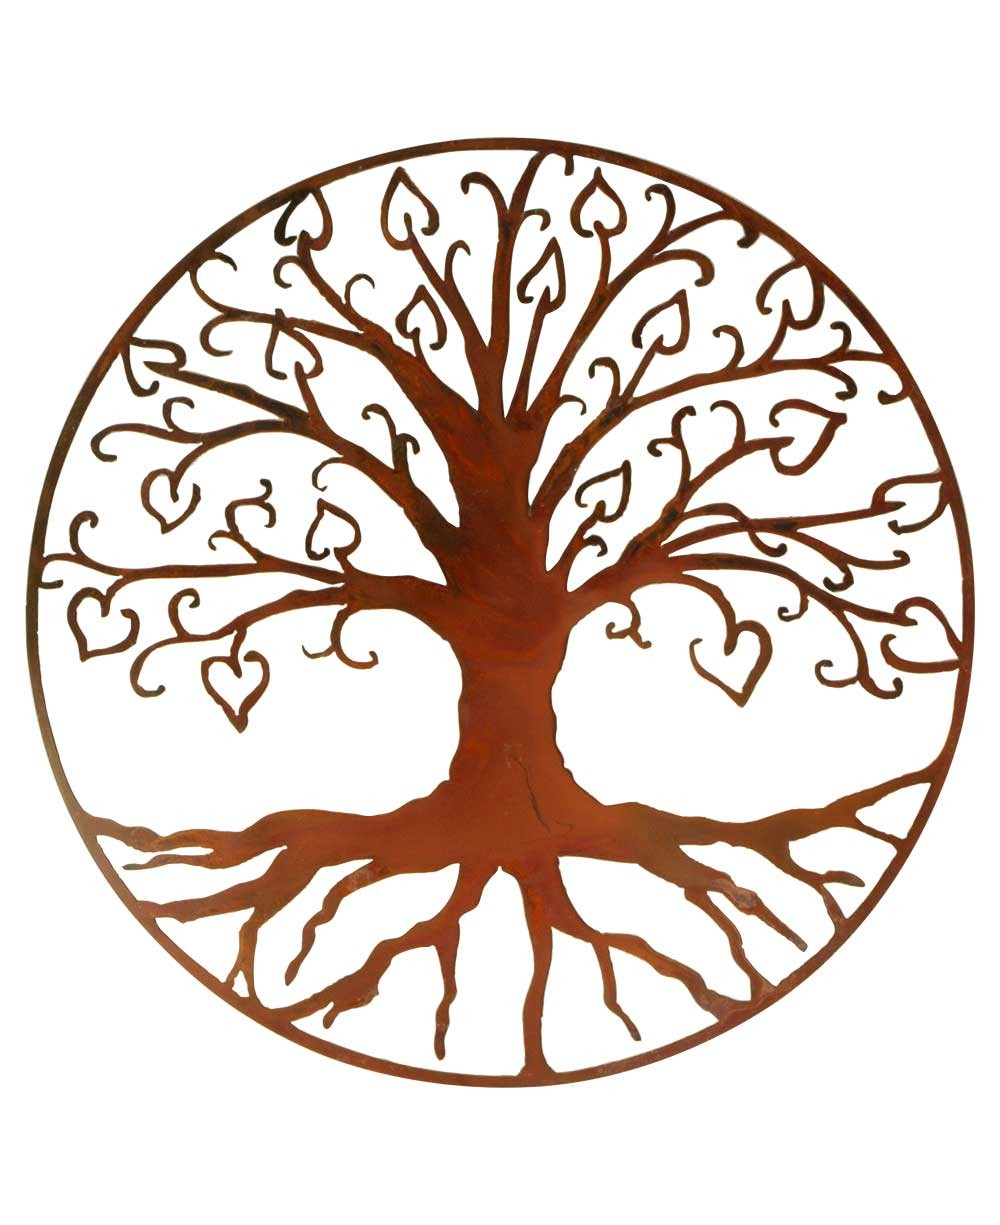 Simple Tree Of Life Drawing At Getdrawings Free For Personal